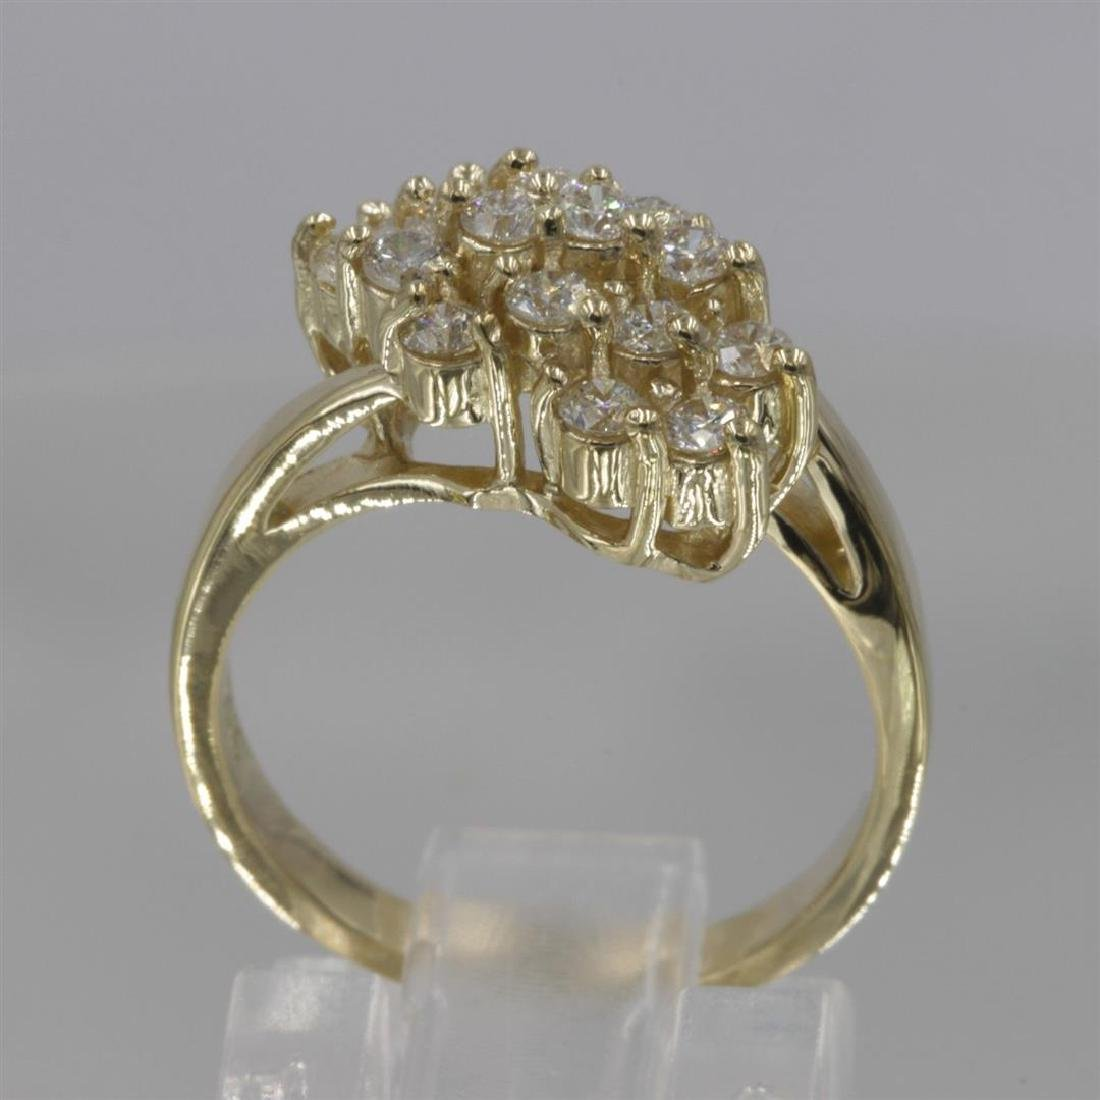 14KT Yellow Gold 0.64 ctw Diamond Cluster Ring - 2